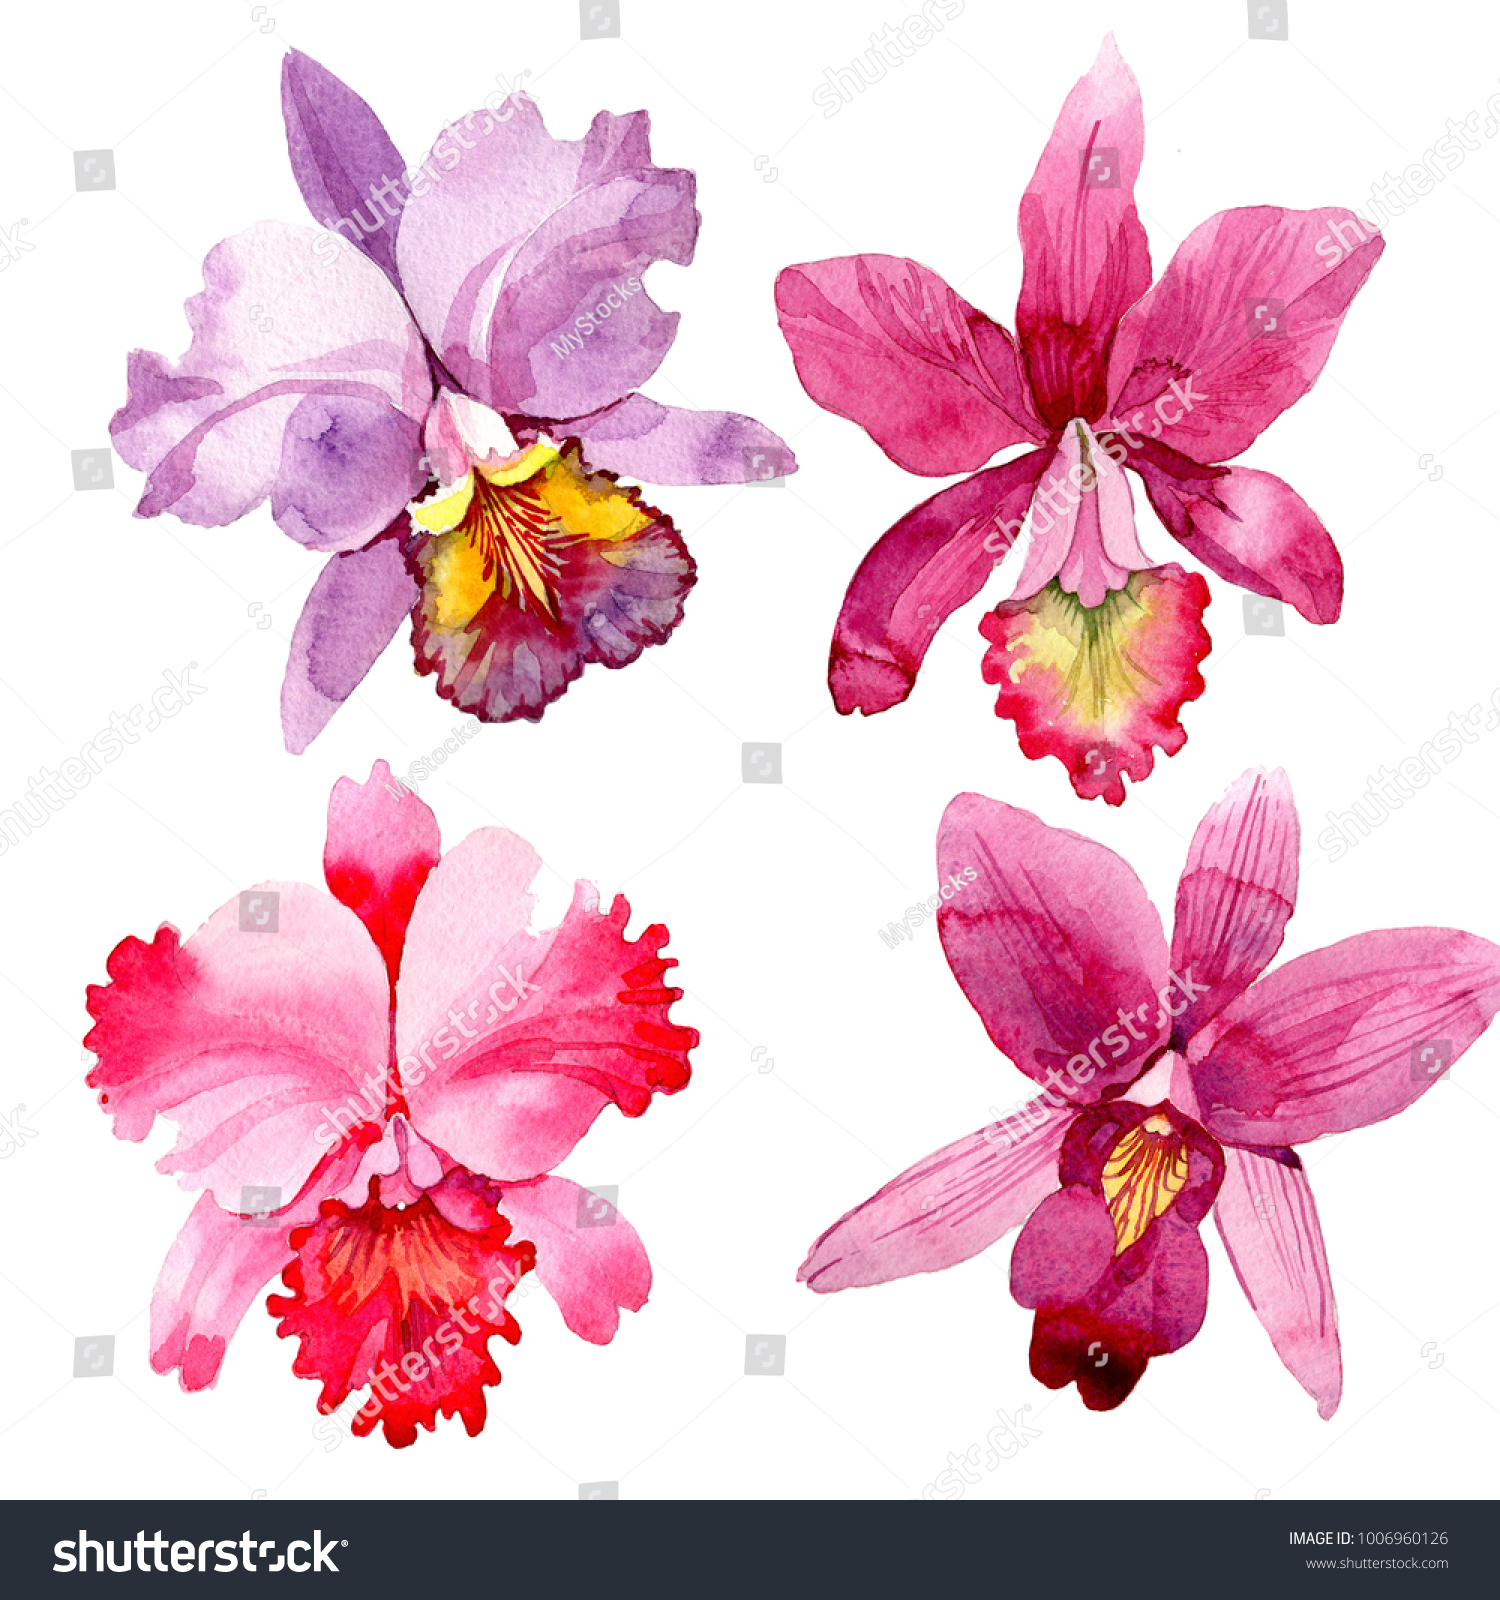 Wildflower Pink Orchid Flower In A Watercolor Style Isolated Full